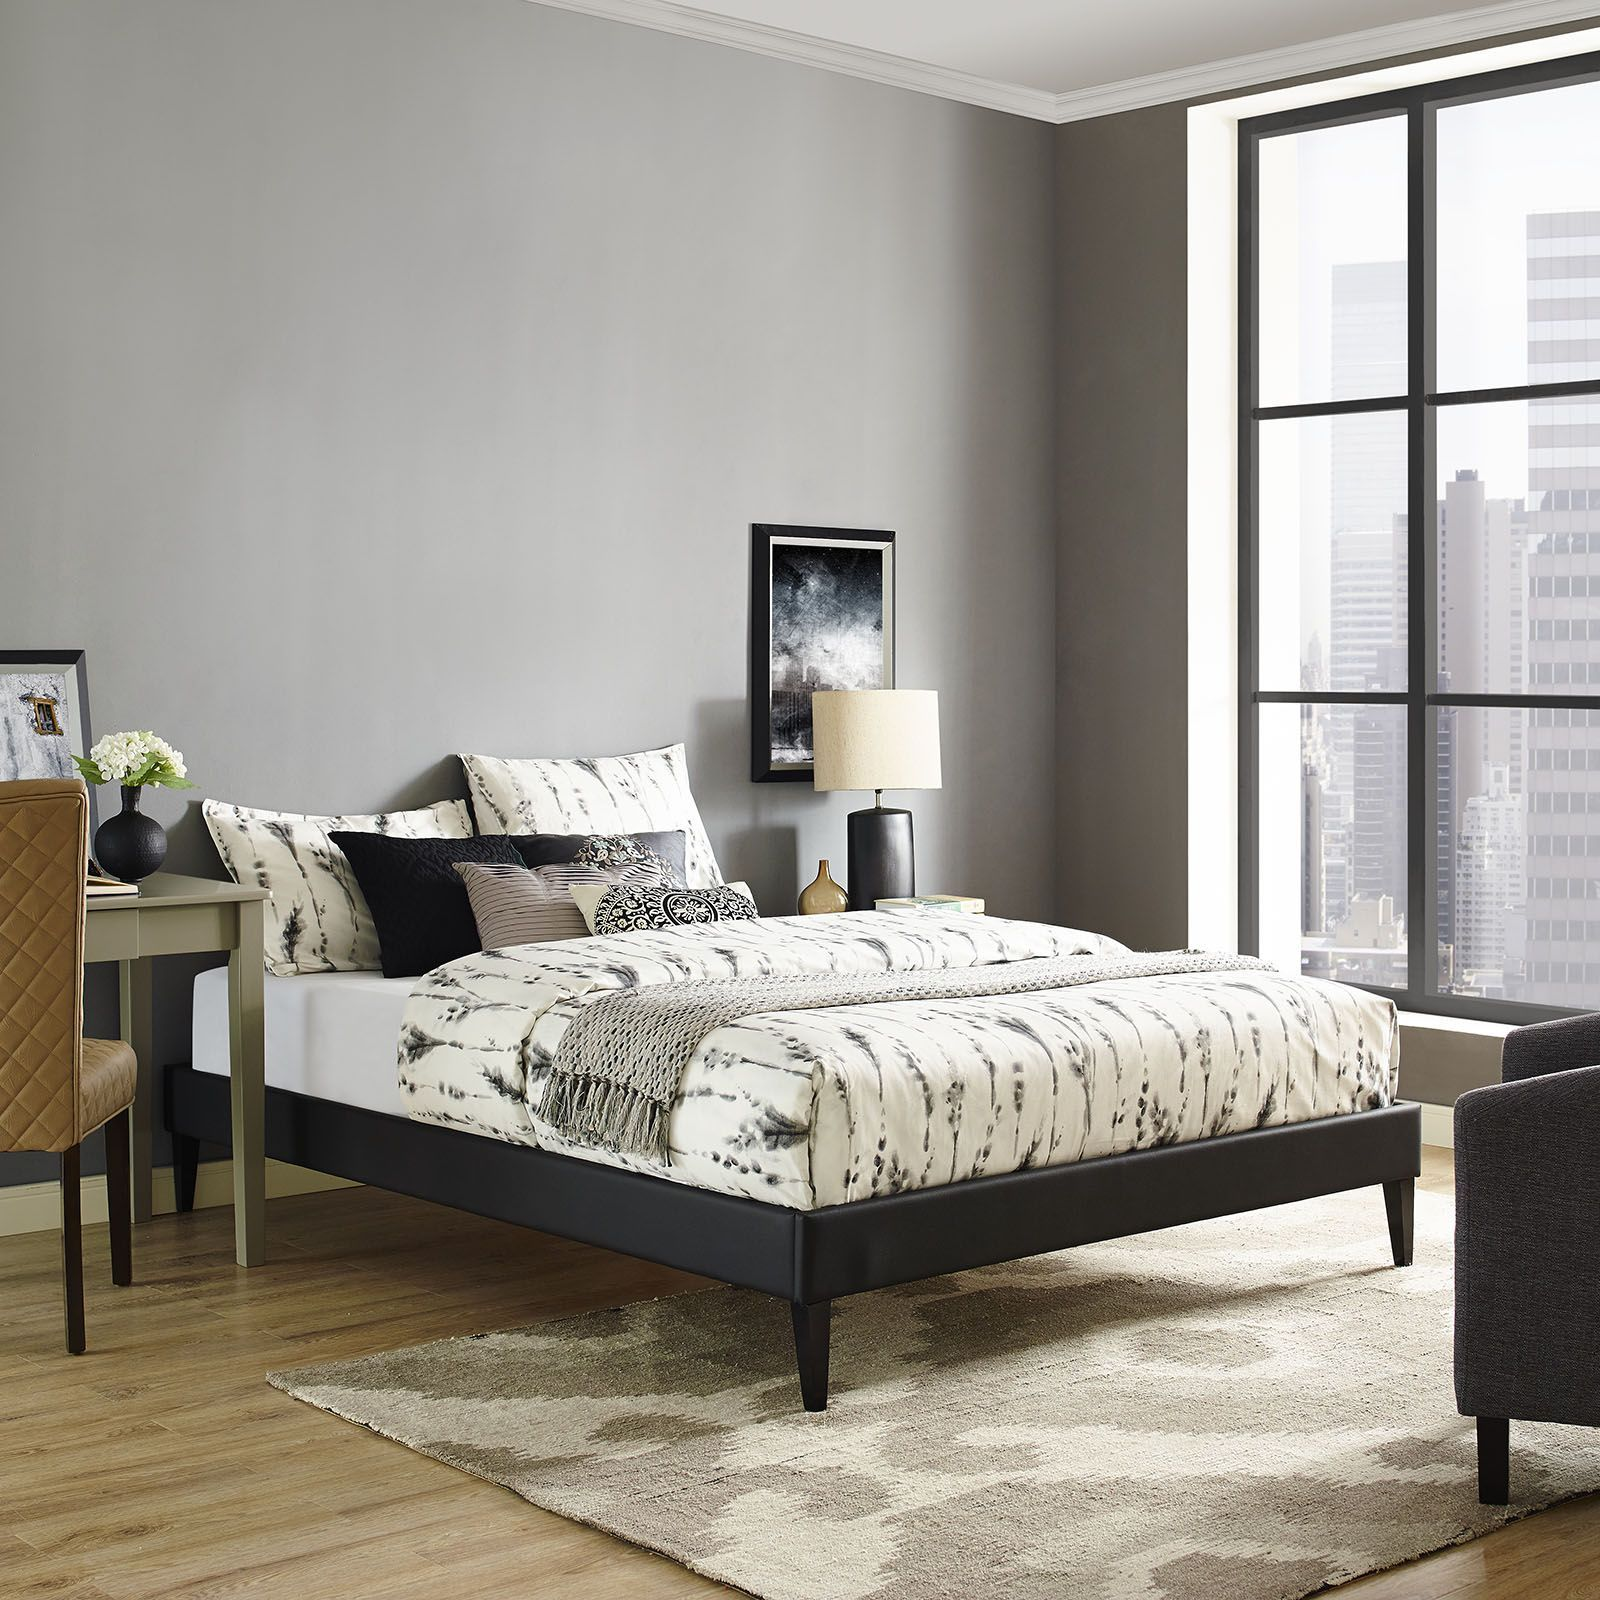 Sharon Full Vinyl Bed Frame With Squared Tapered Legs, Black   Accelerate  Your Bedroom Decor